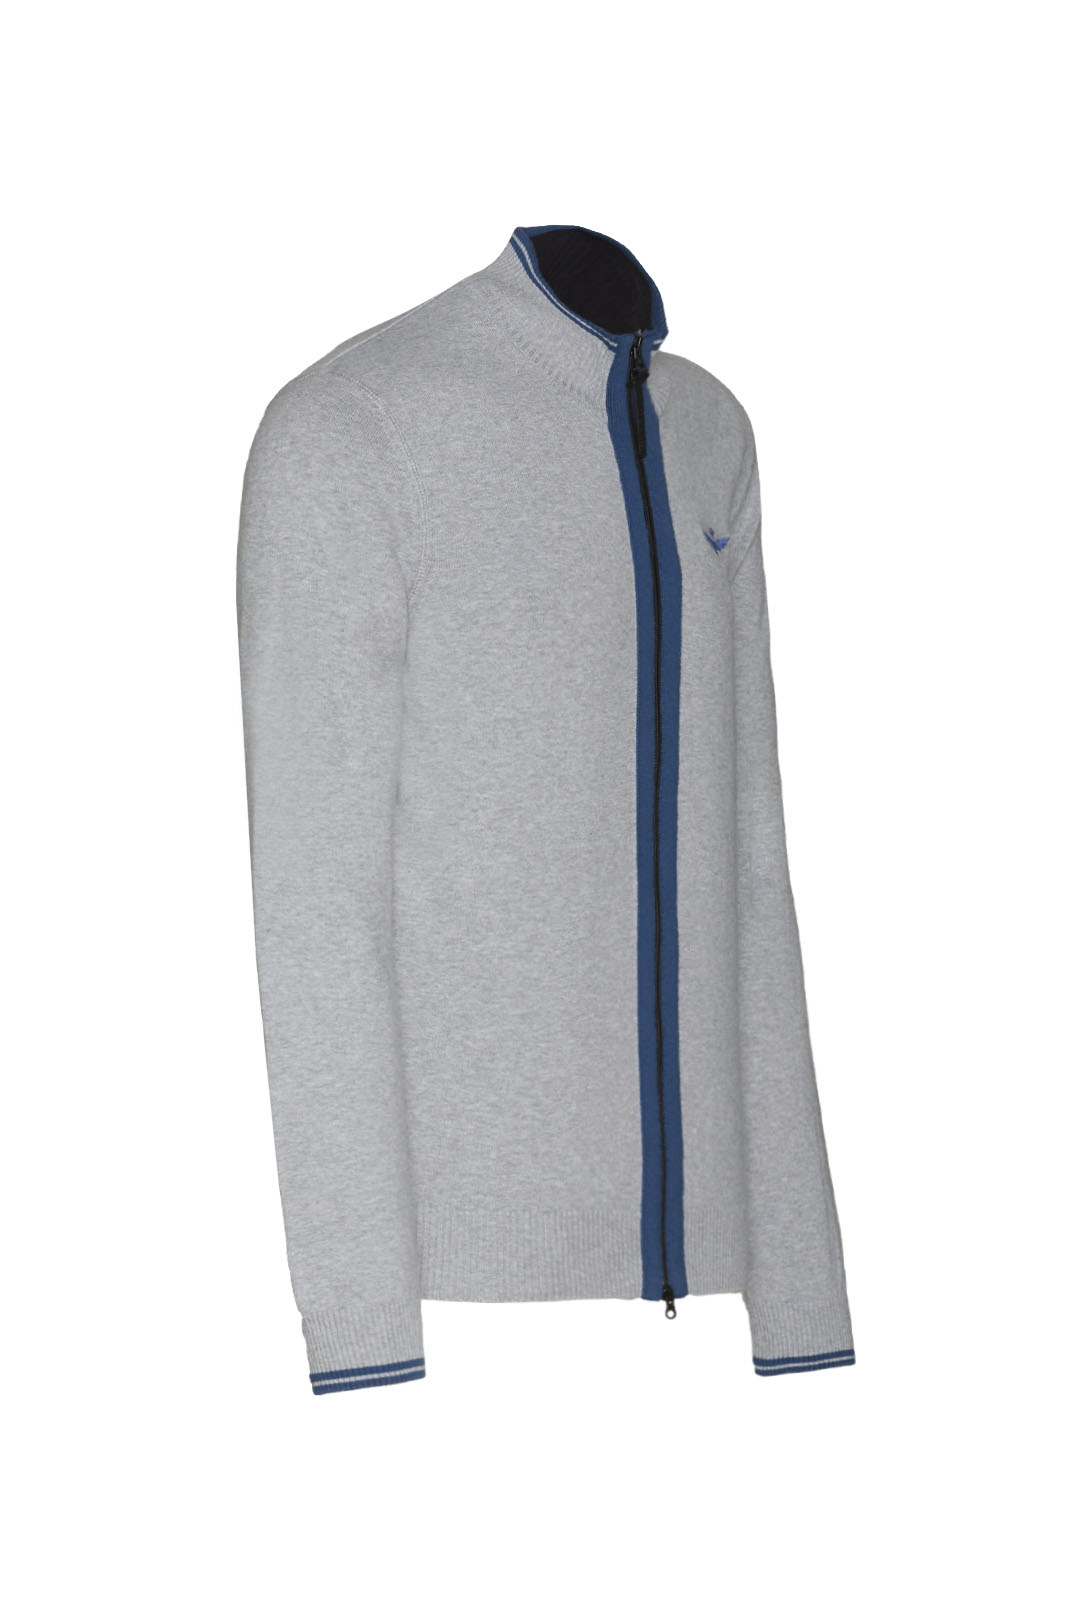 Fullzip sweater with contrasting details 3